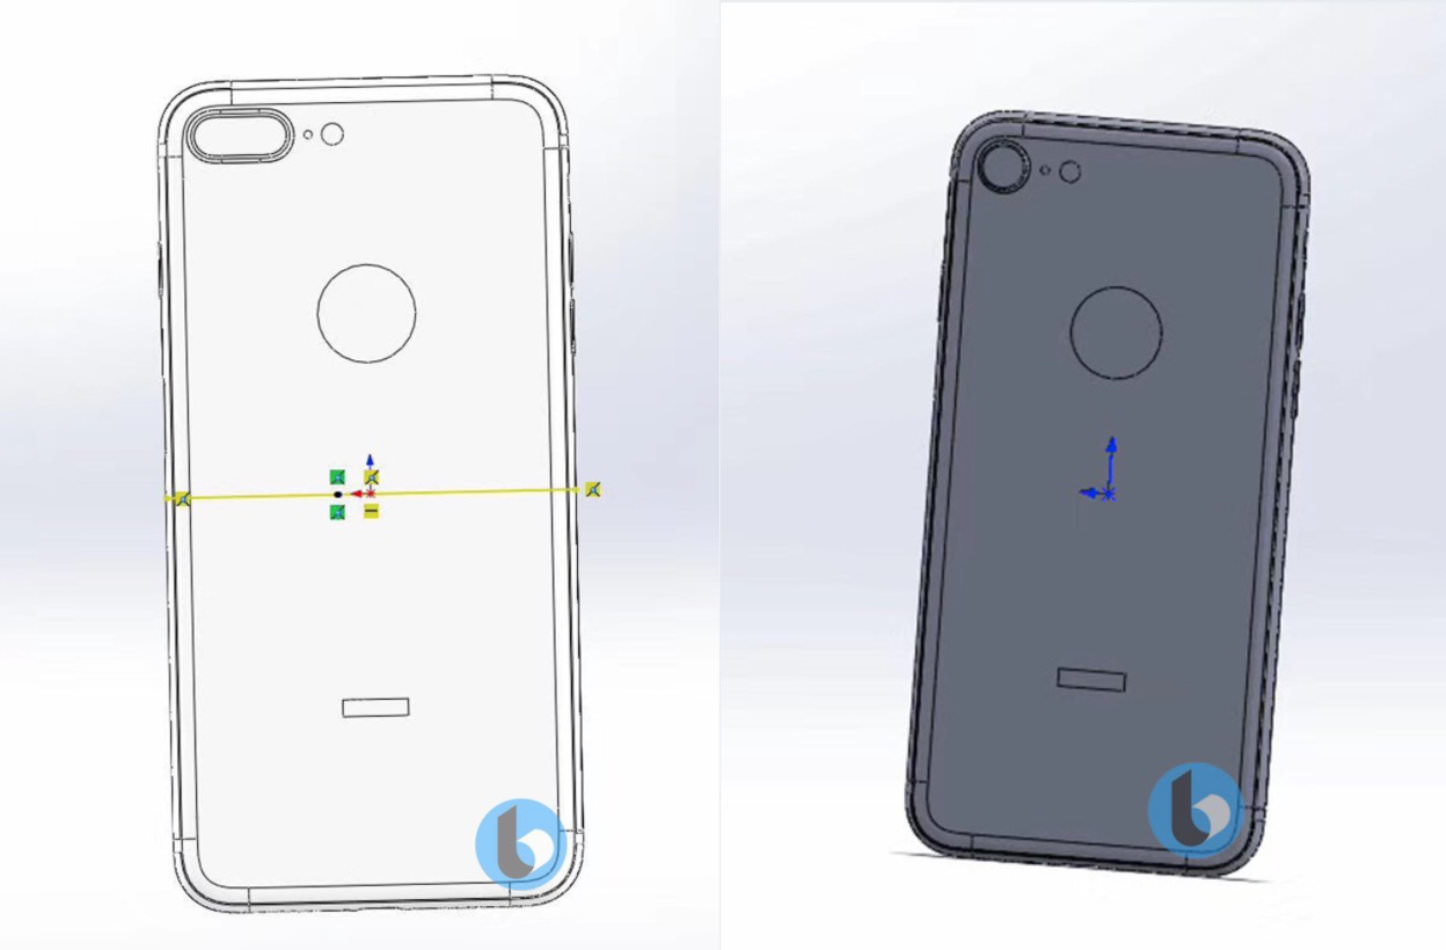 Iphone 8 8plus schematics leak